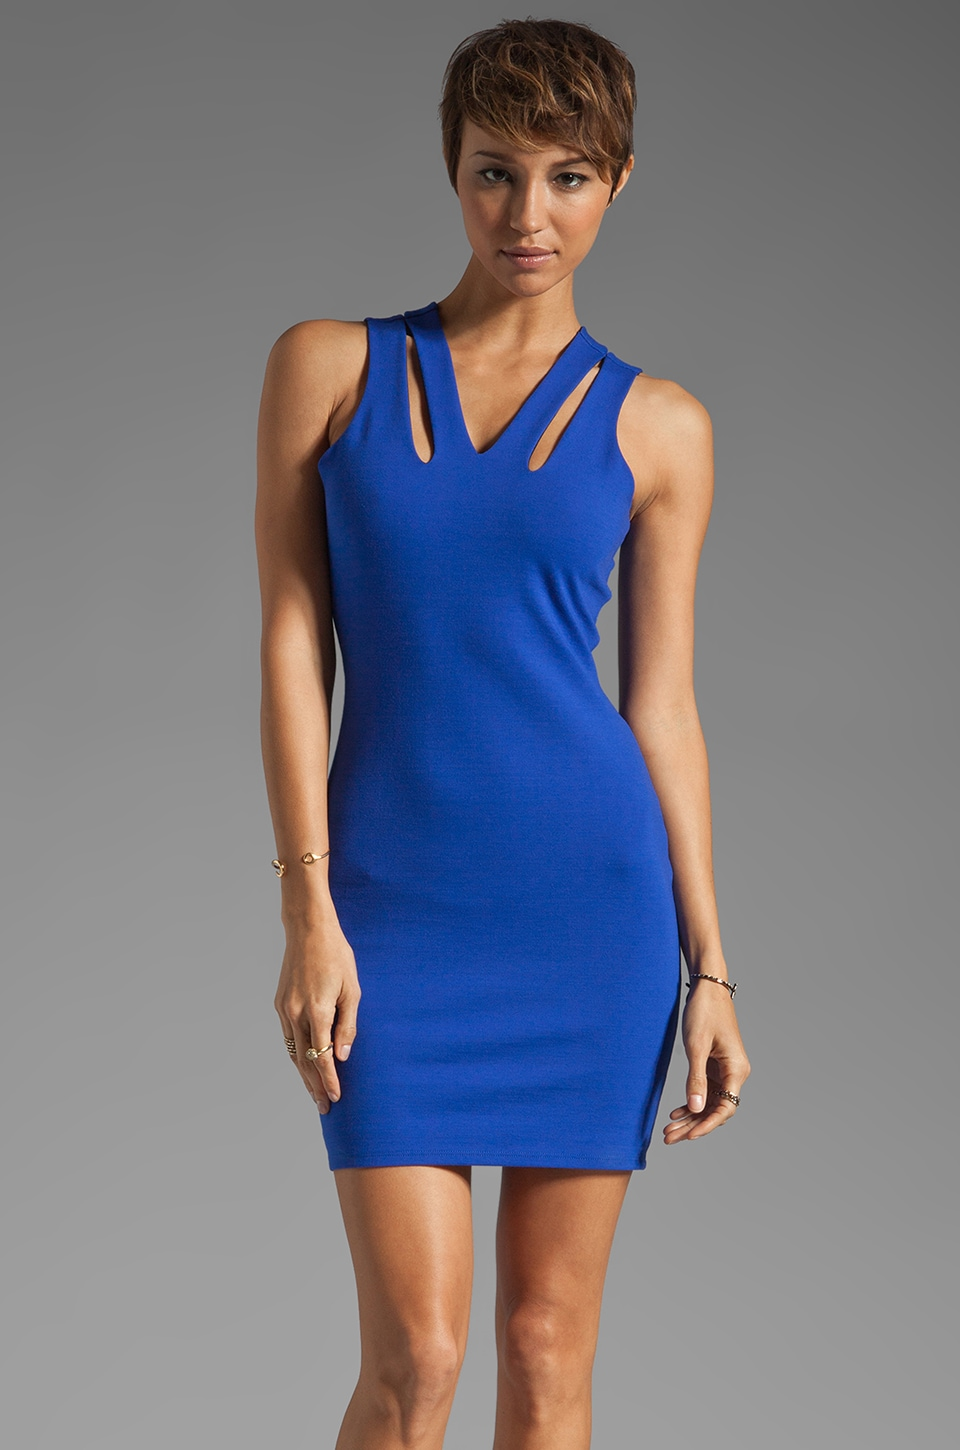 Mason by Michelle Mason Cut Out Tank Dress in Cobalt